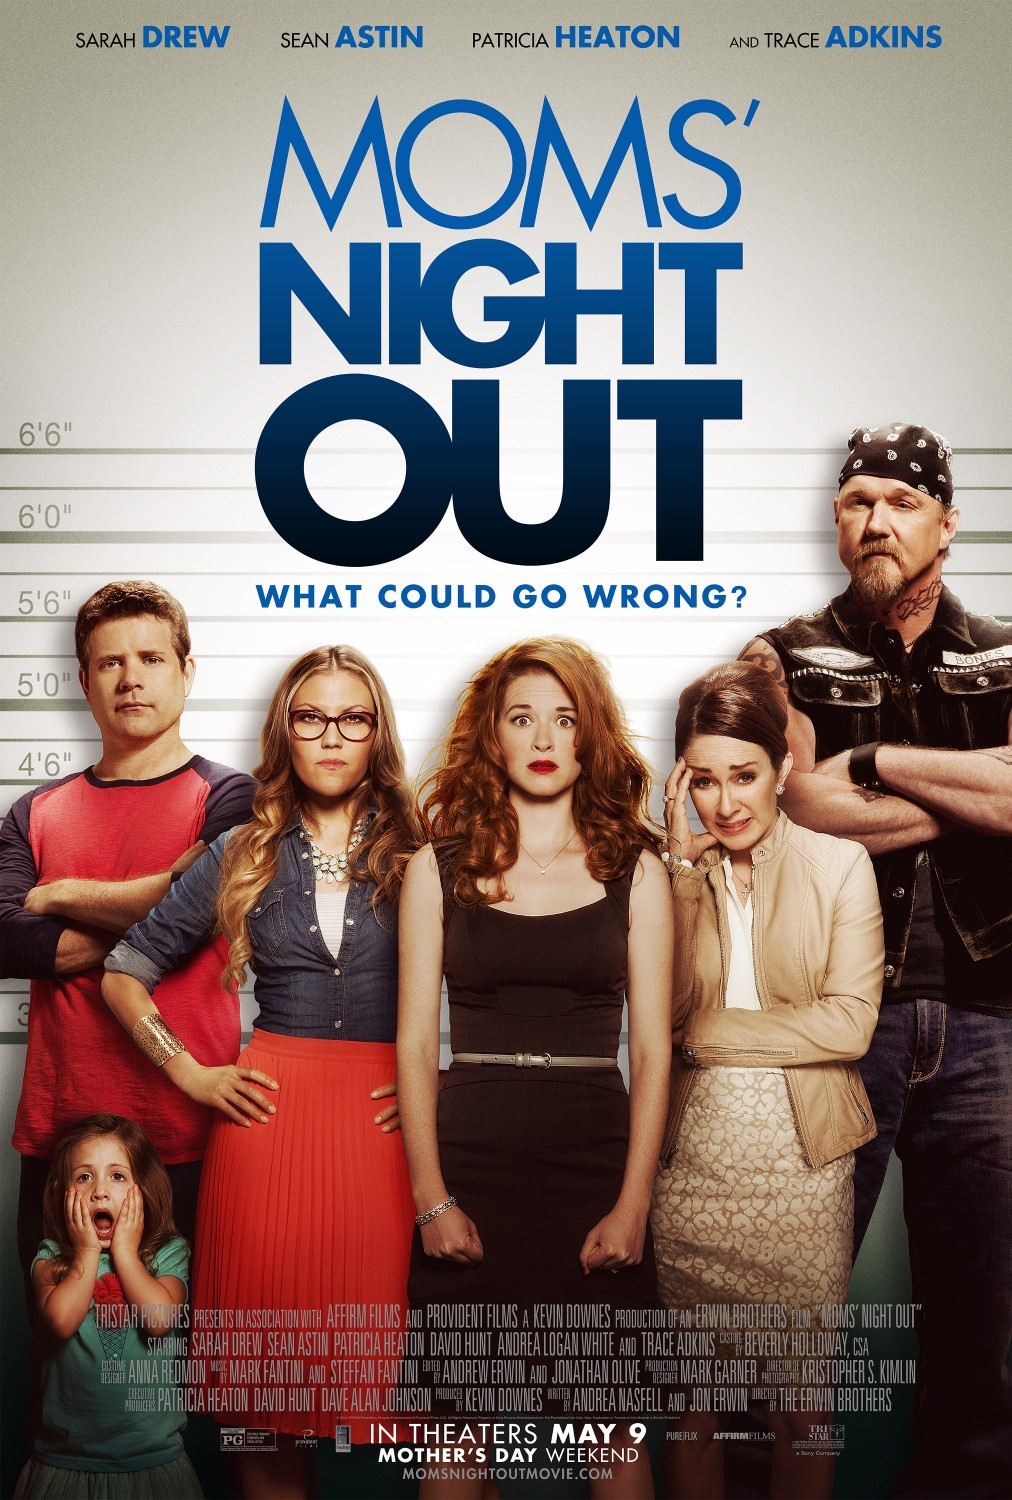 HABLANDO DE CINE: «MOM'S NIGHT OUT» UNA COMEDIA SIN MULETILLA